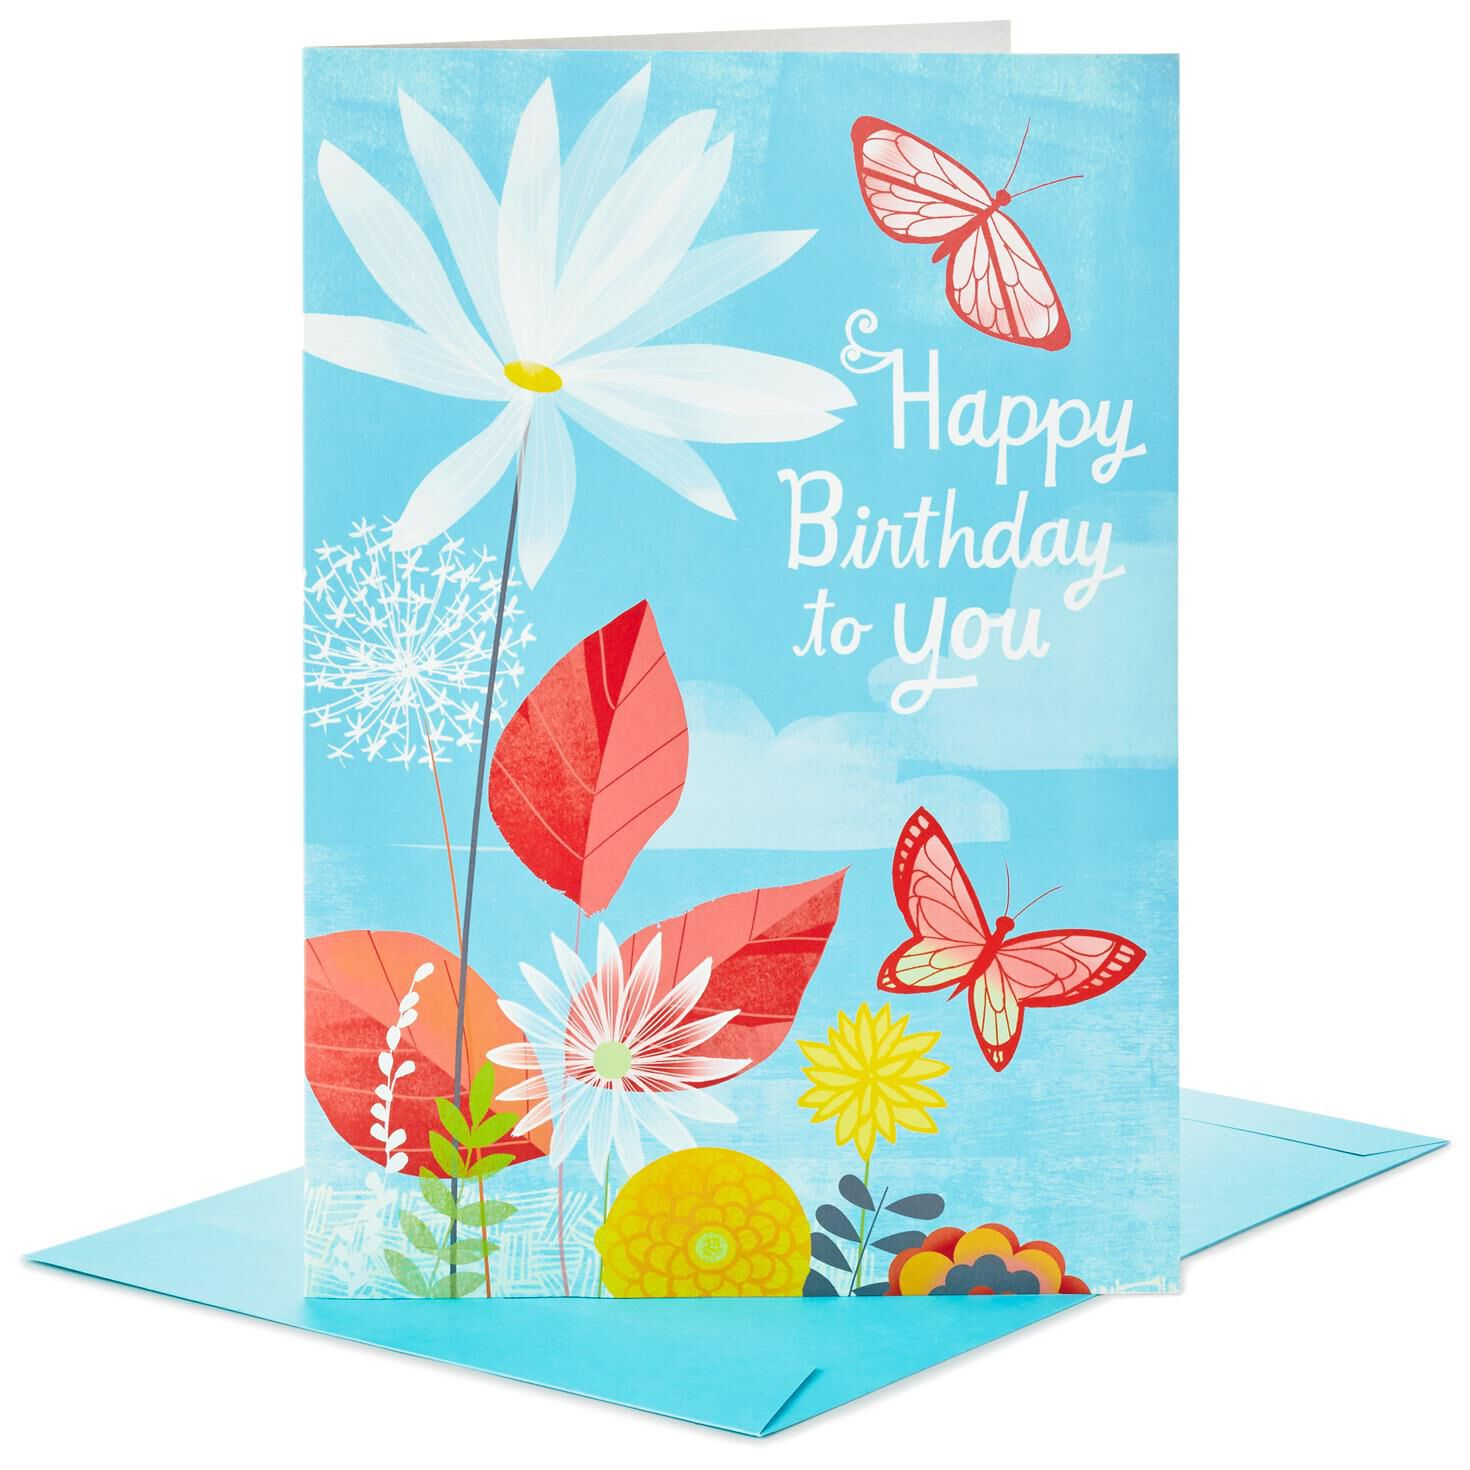 Joyful Butterflies Pop Up Jumbo Birthday Card Root Source Image Jpg 1024x1024 Greeting Cards Store